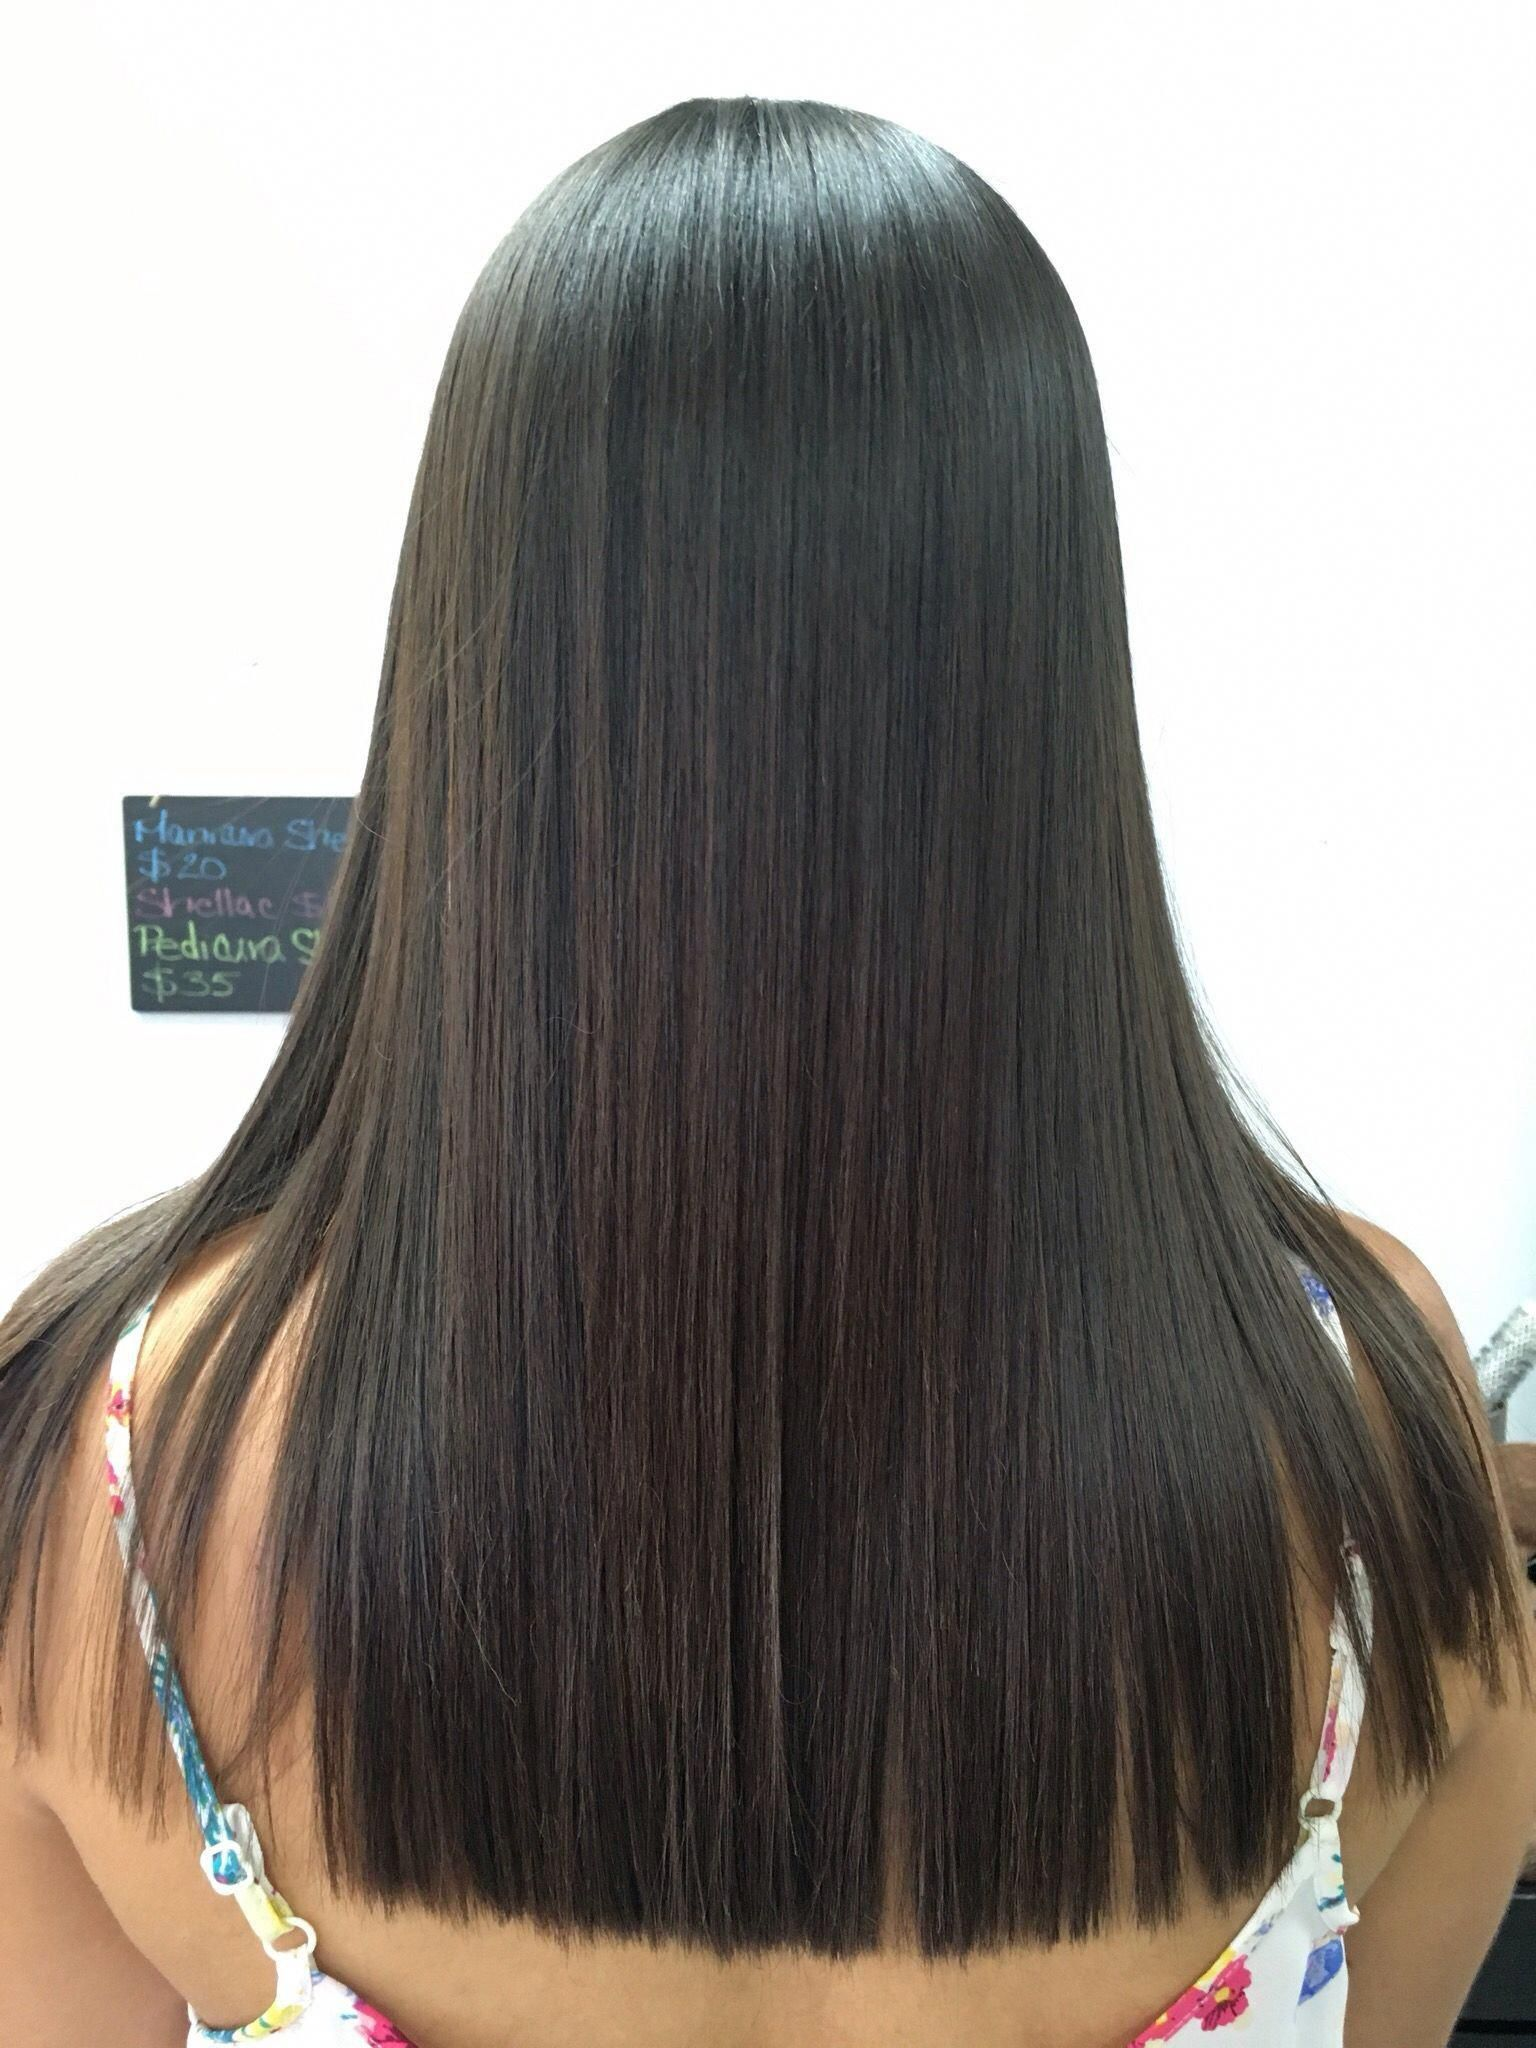 How Should Hair Extensions Be? Super long hair is